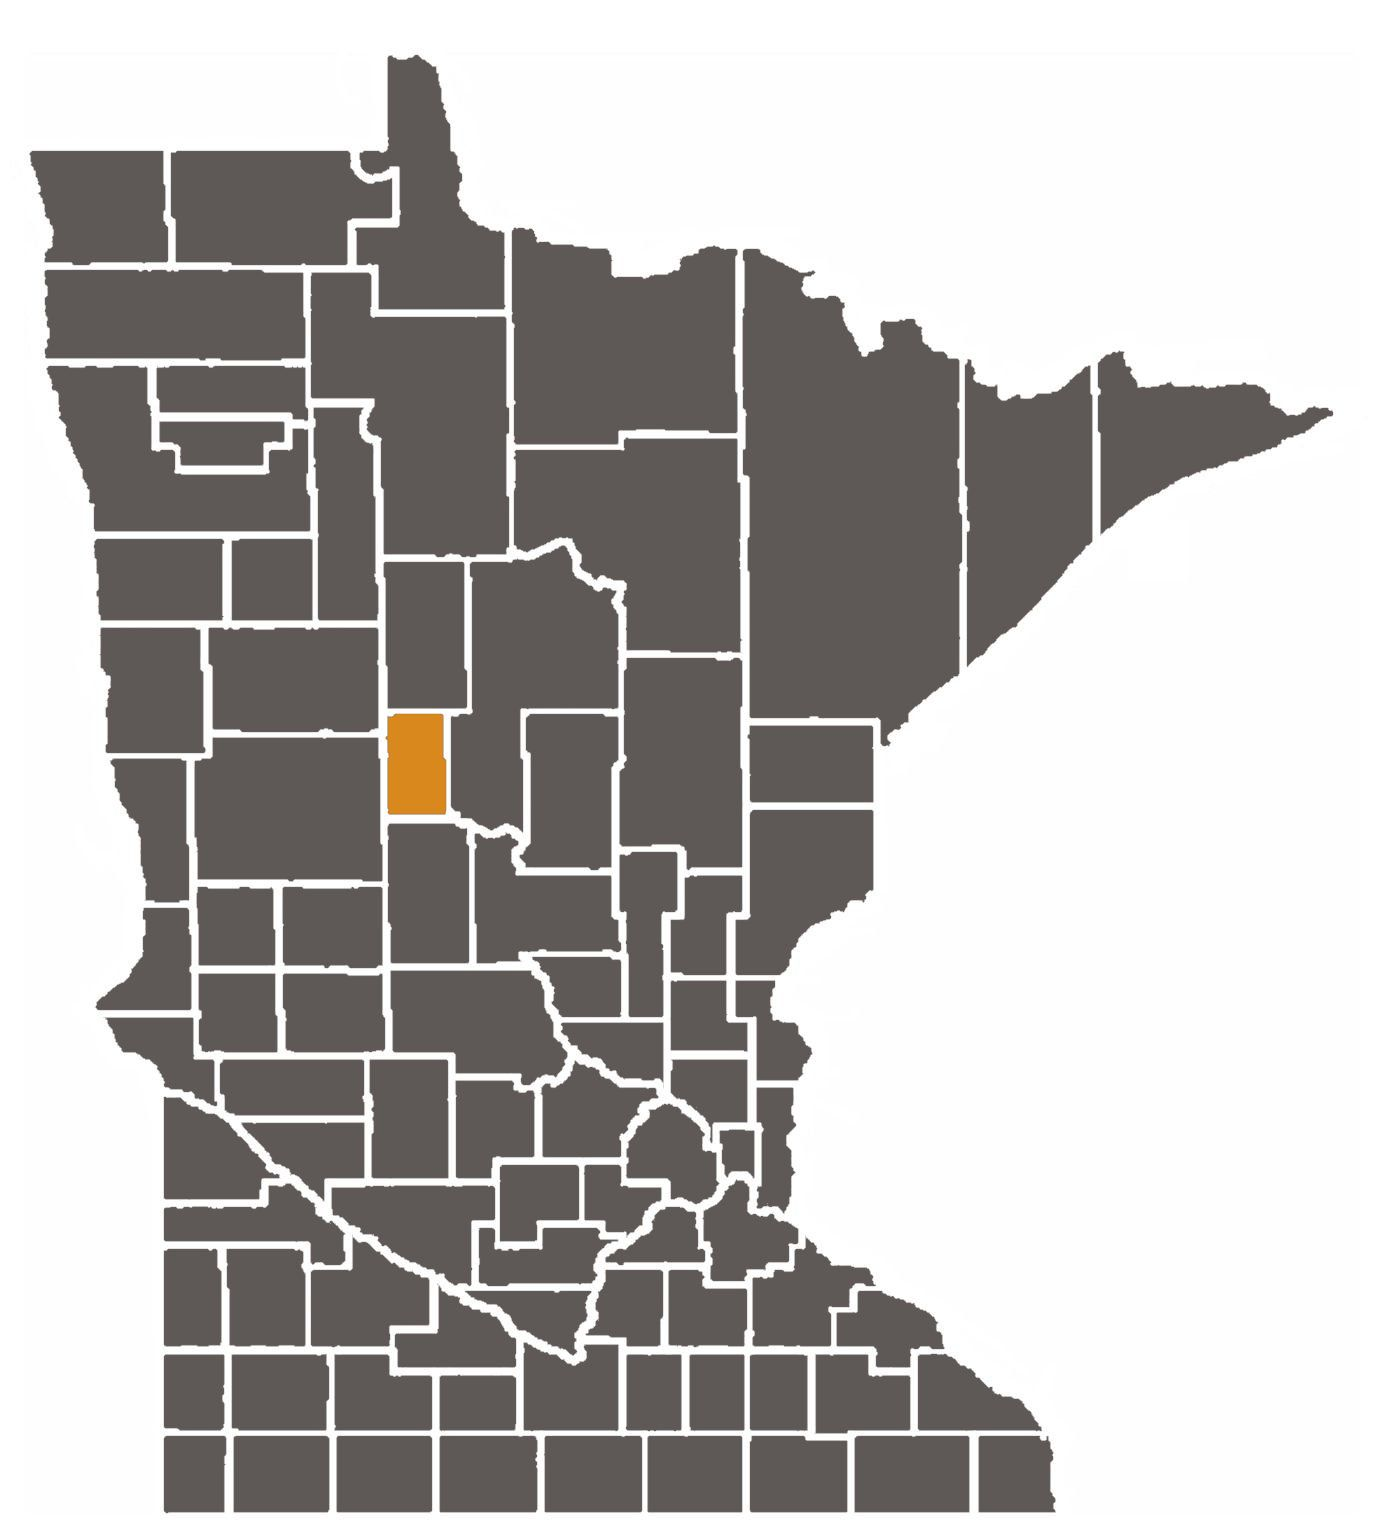 Minnesota map with Wadena County highlighted.